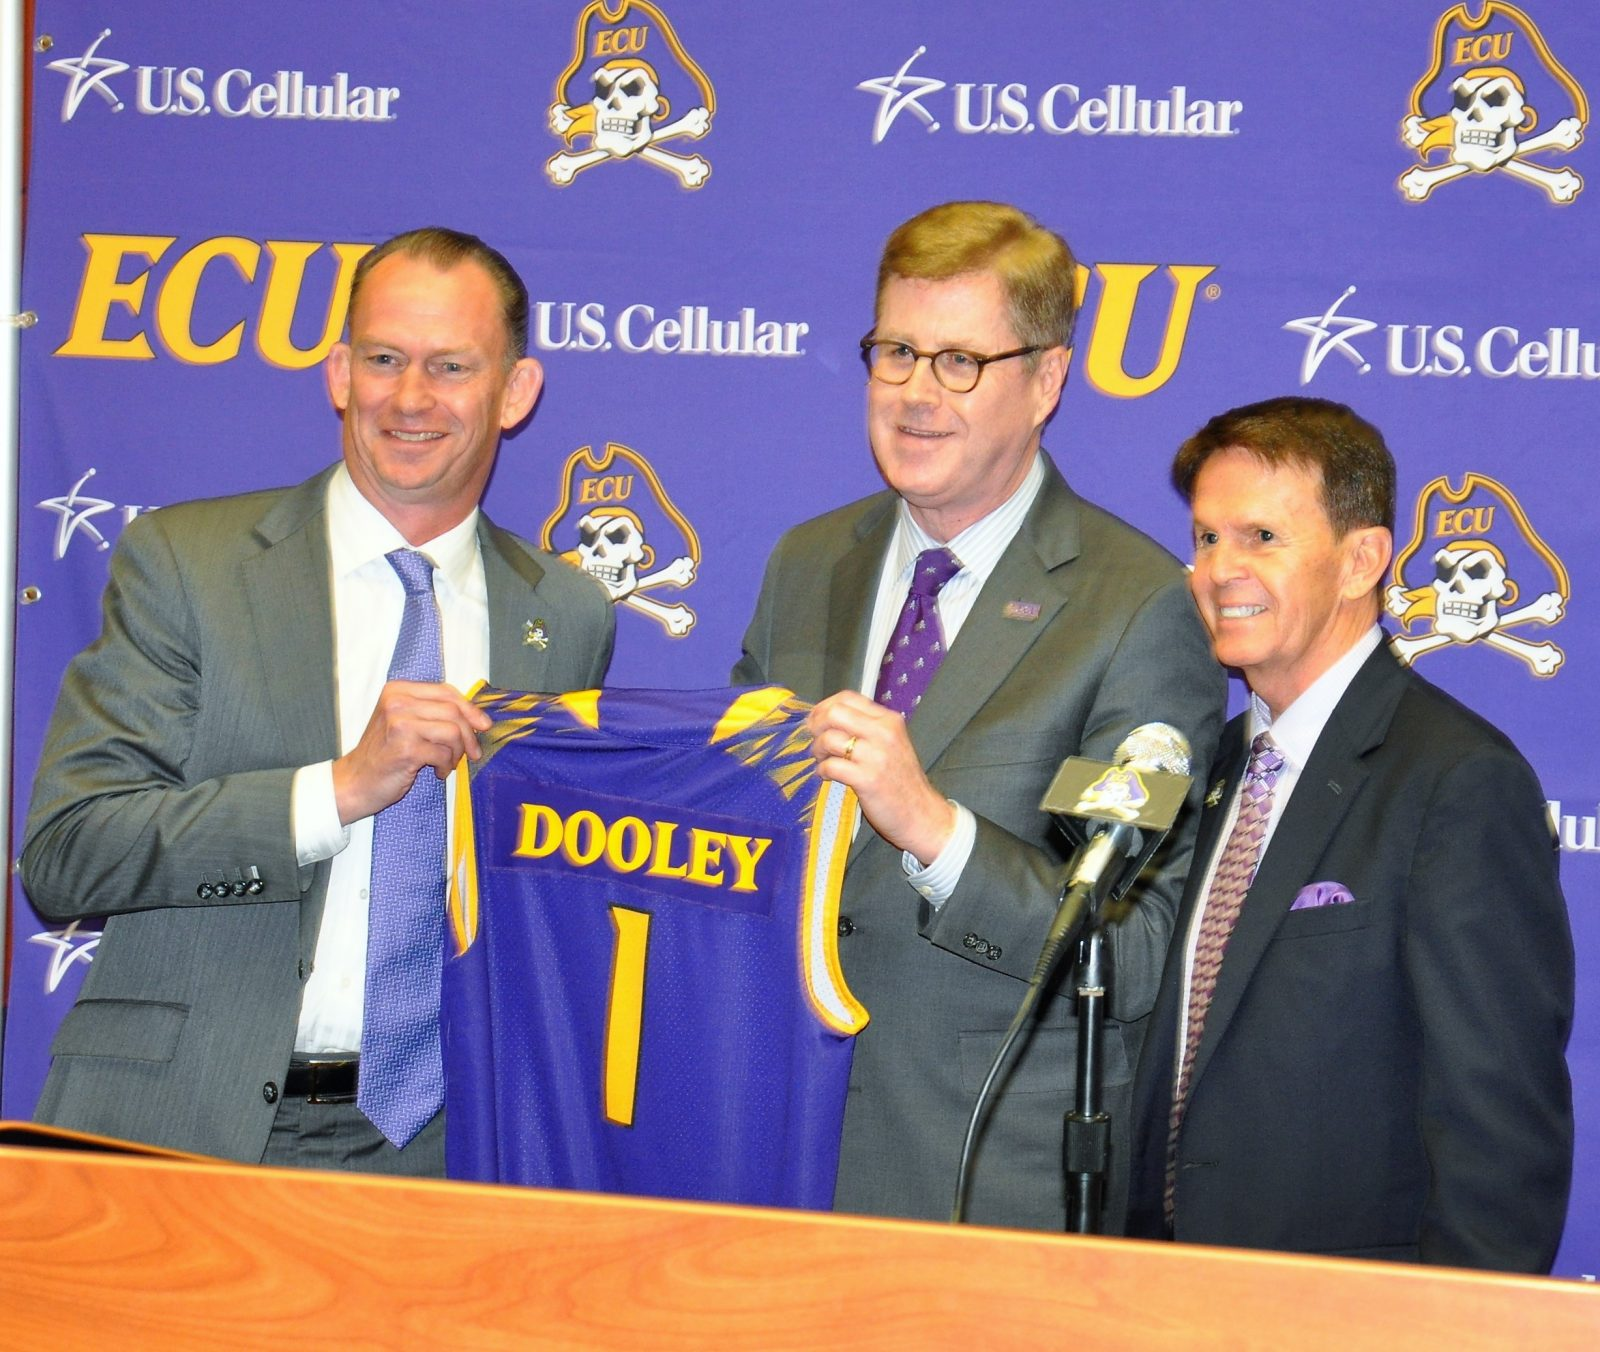 New coach Joe Dooley (left) receives a personalized jersey from Dr. Cecil Staton, ECU Chancellor, as Dave Hart (right), special advisor, looks on.